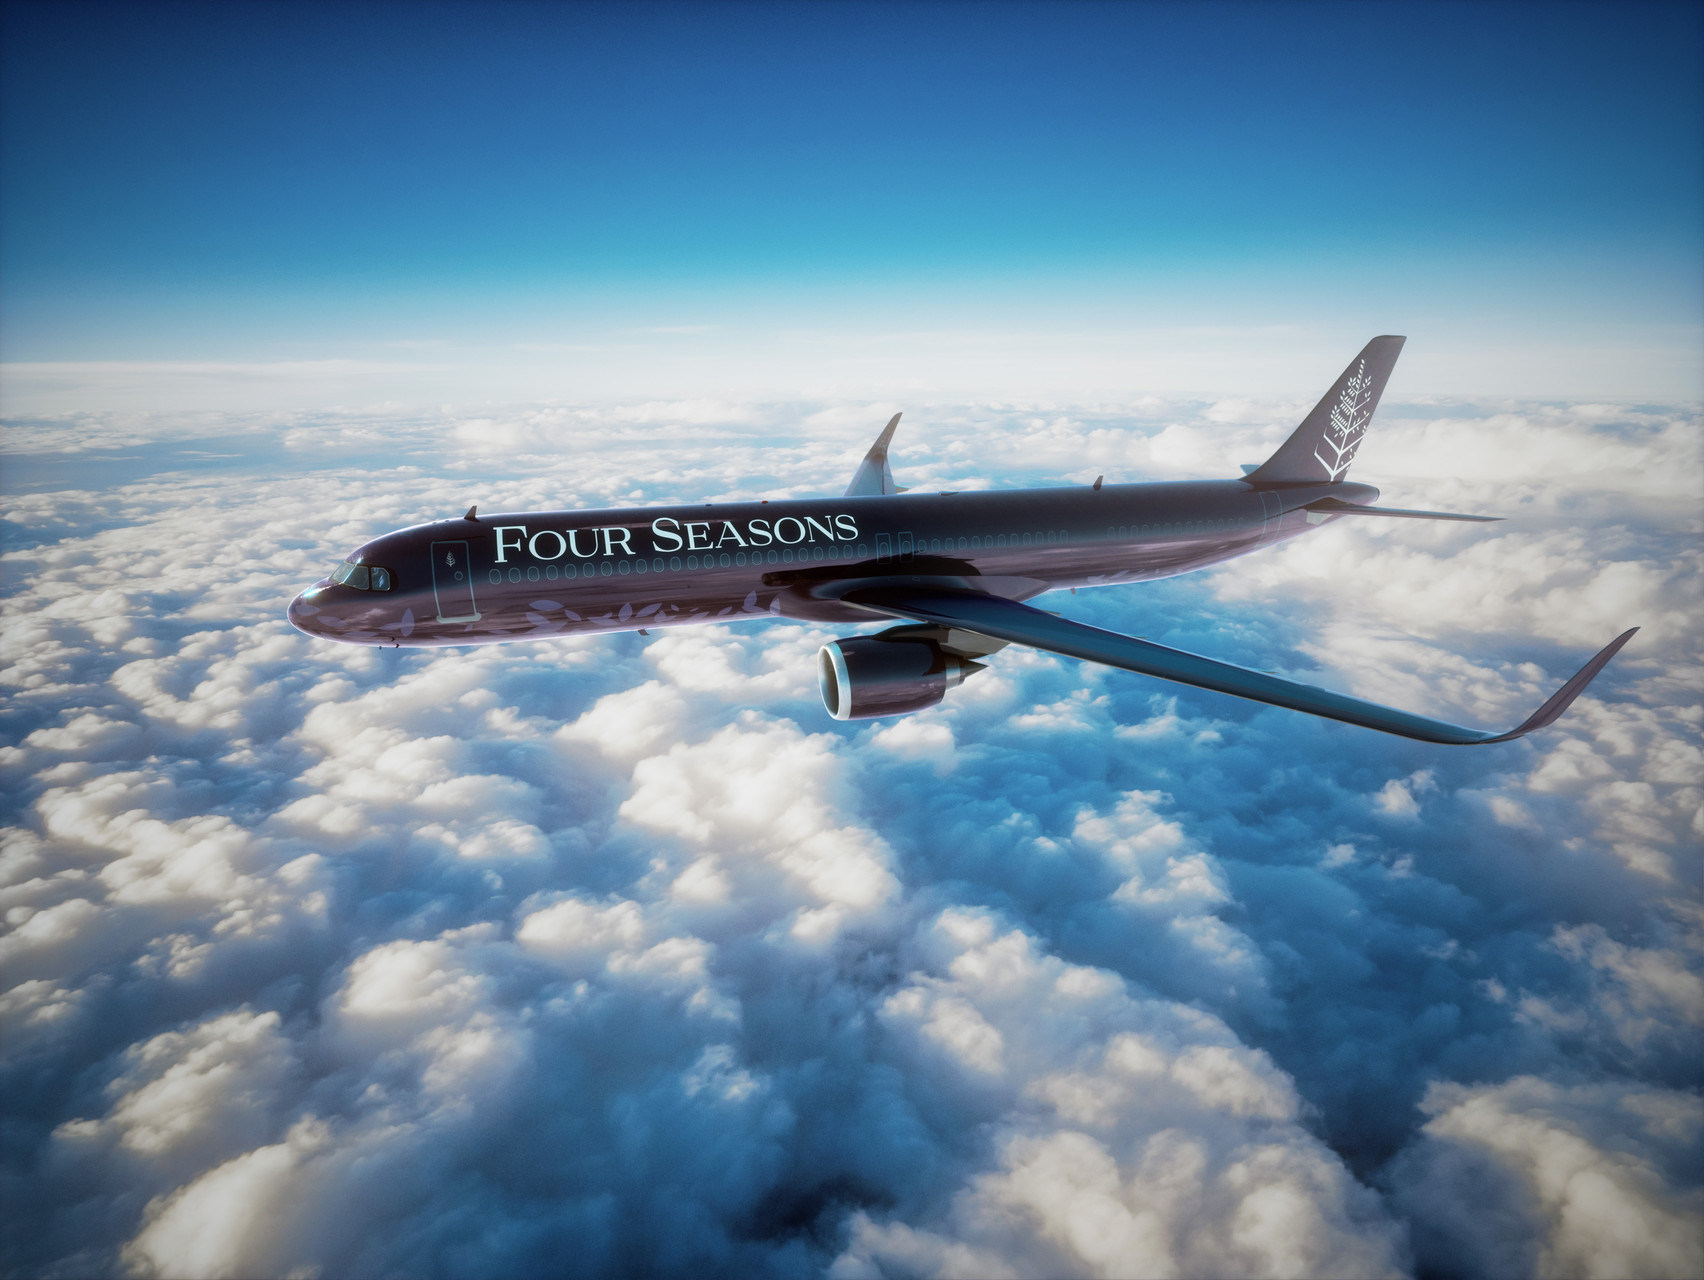 The Four Seasons Private Jet Is Ready To Fly You To Exotic Destinations In 2022